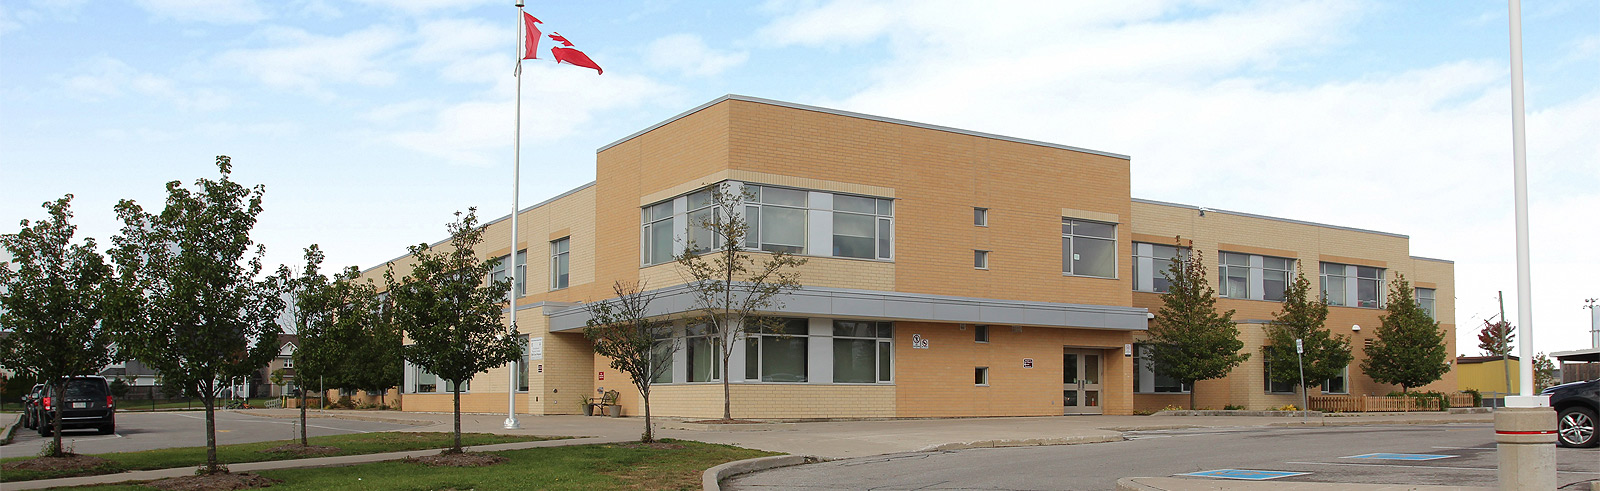 Photo of exterior of school